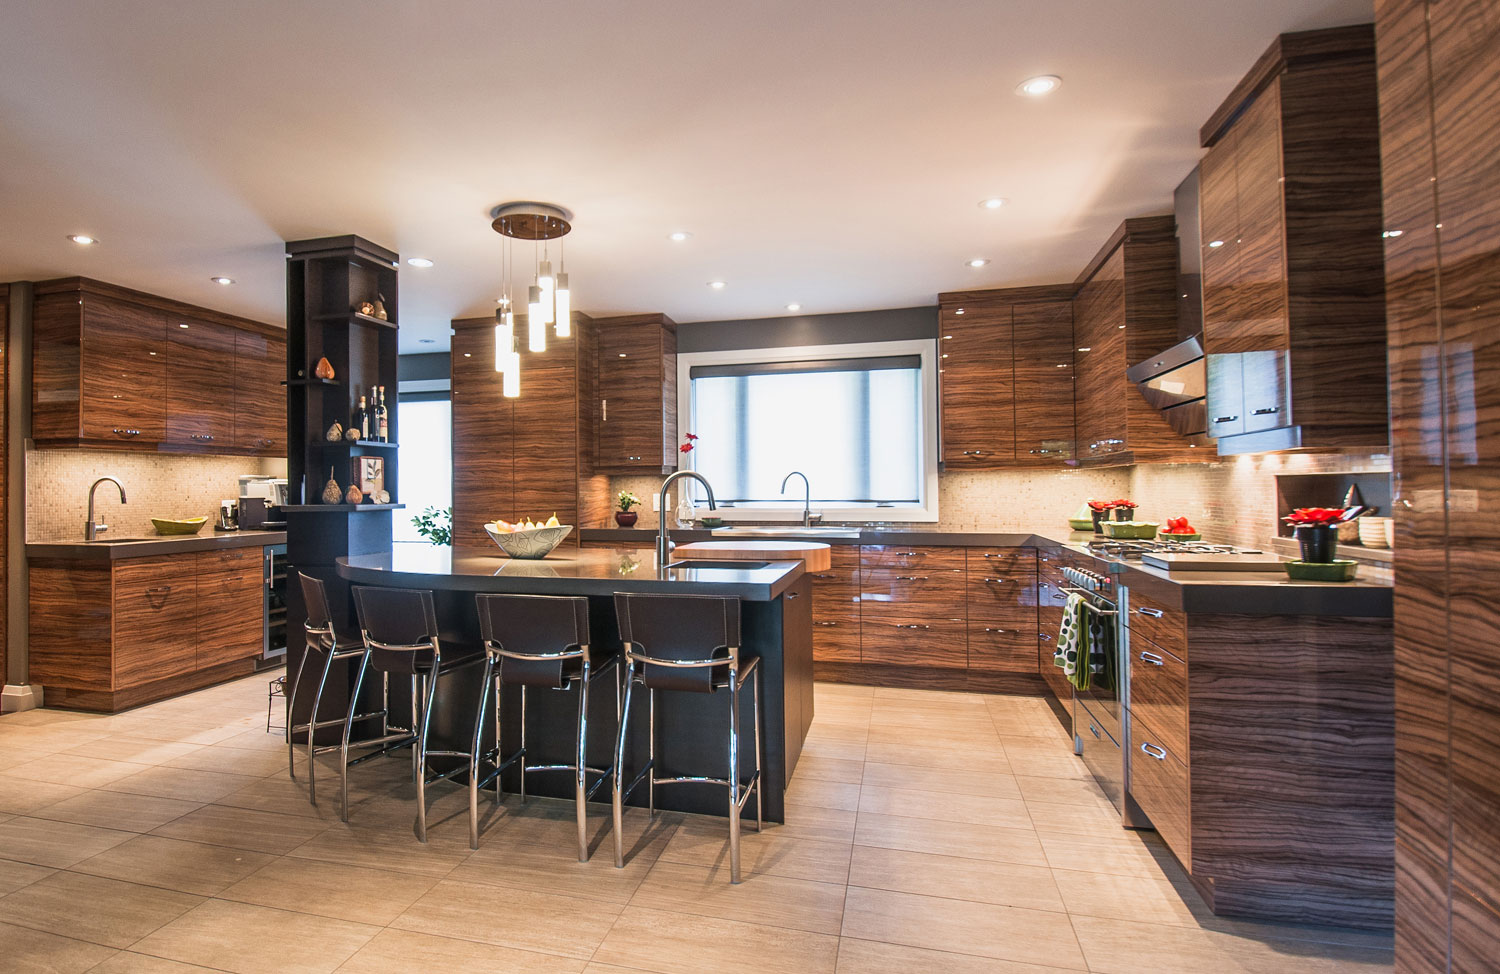 Large kitchen with bamboo style cabinets, stainless steel appliances, hidden fridge, bar area with wine fridge, and large curved island with cutting block built into the countertop - Total Living Concepts barrie ontario